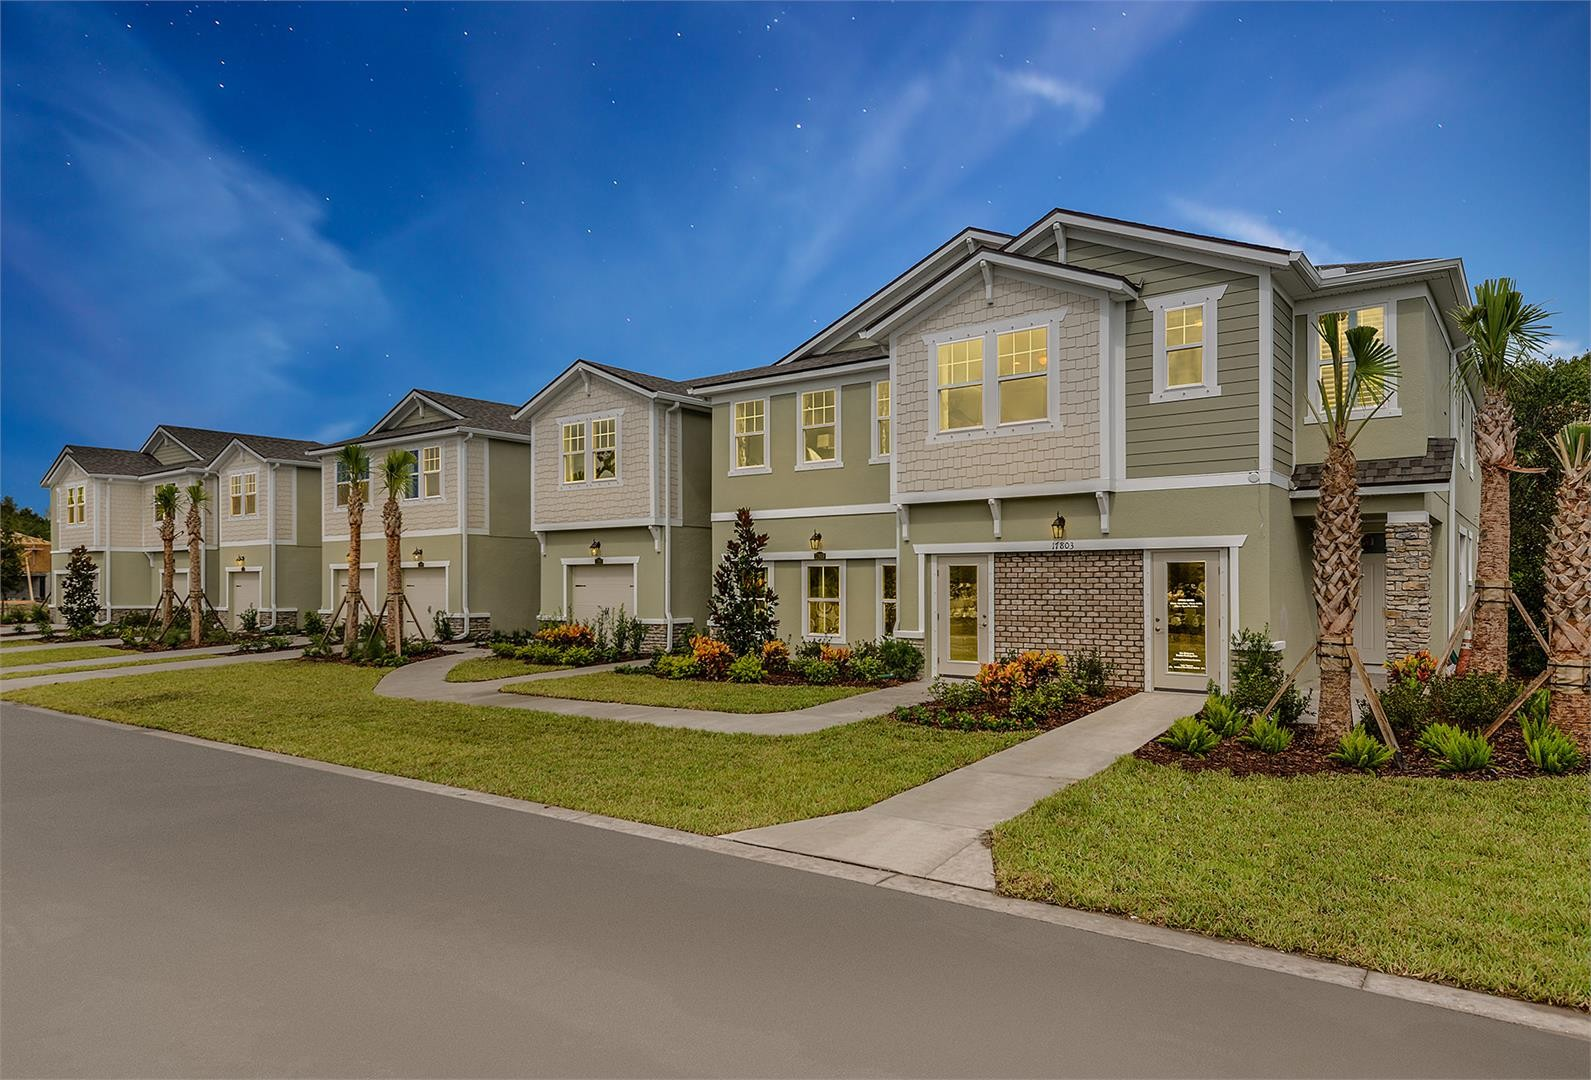 New Homes In Lutz Fl